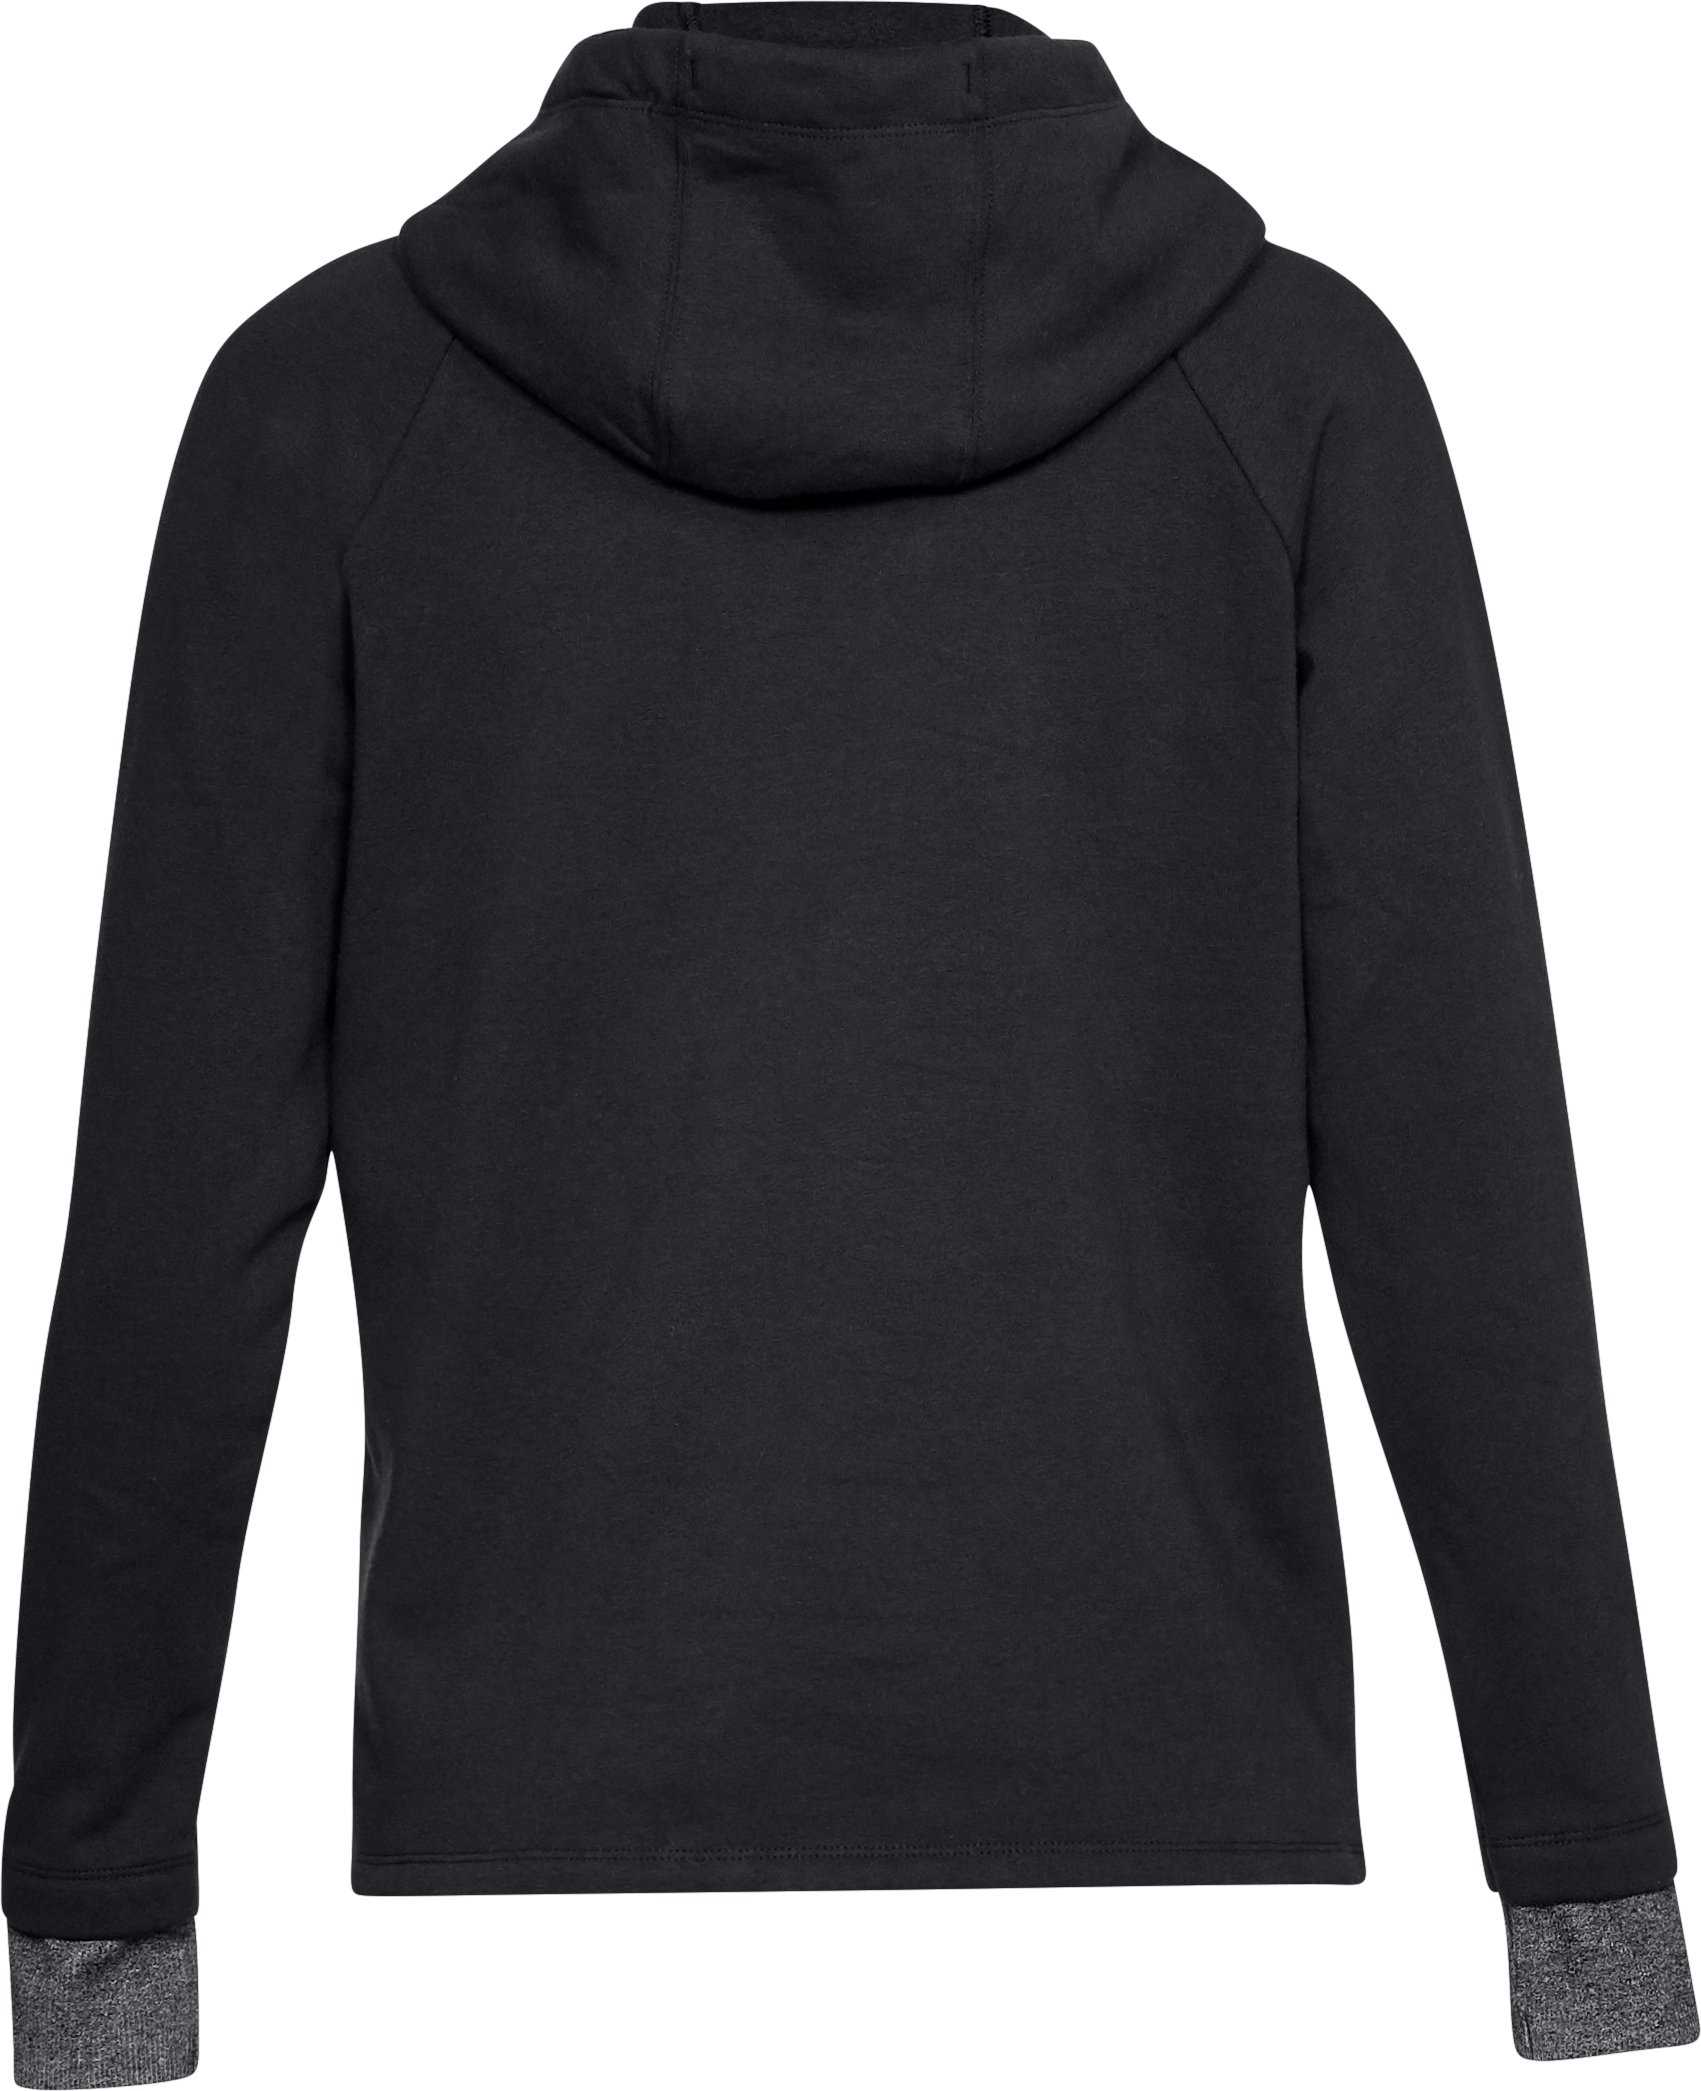 Women's Threadborne Fleece Fashion Hoodie, Black , undefined